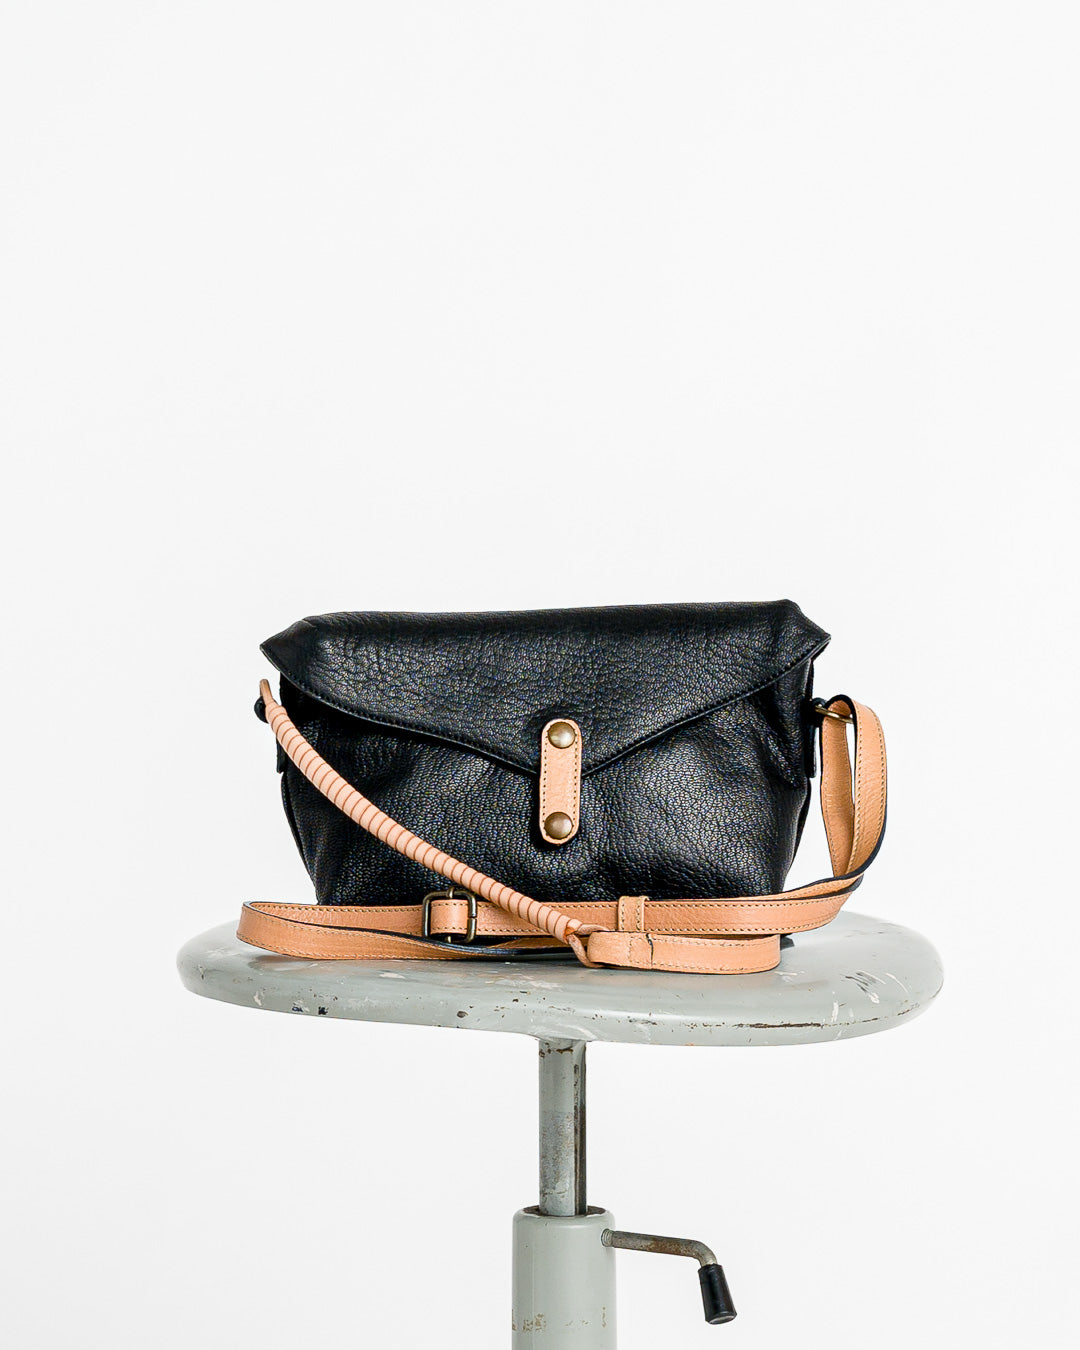 Beatriz Furest // Tasche Sea Milano Black